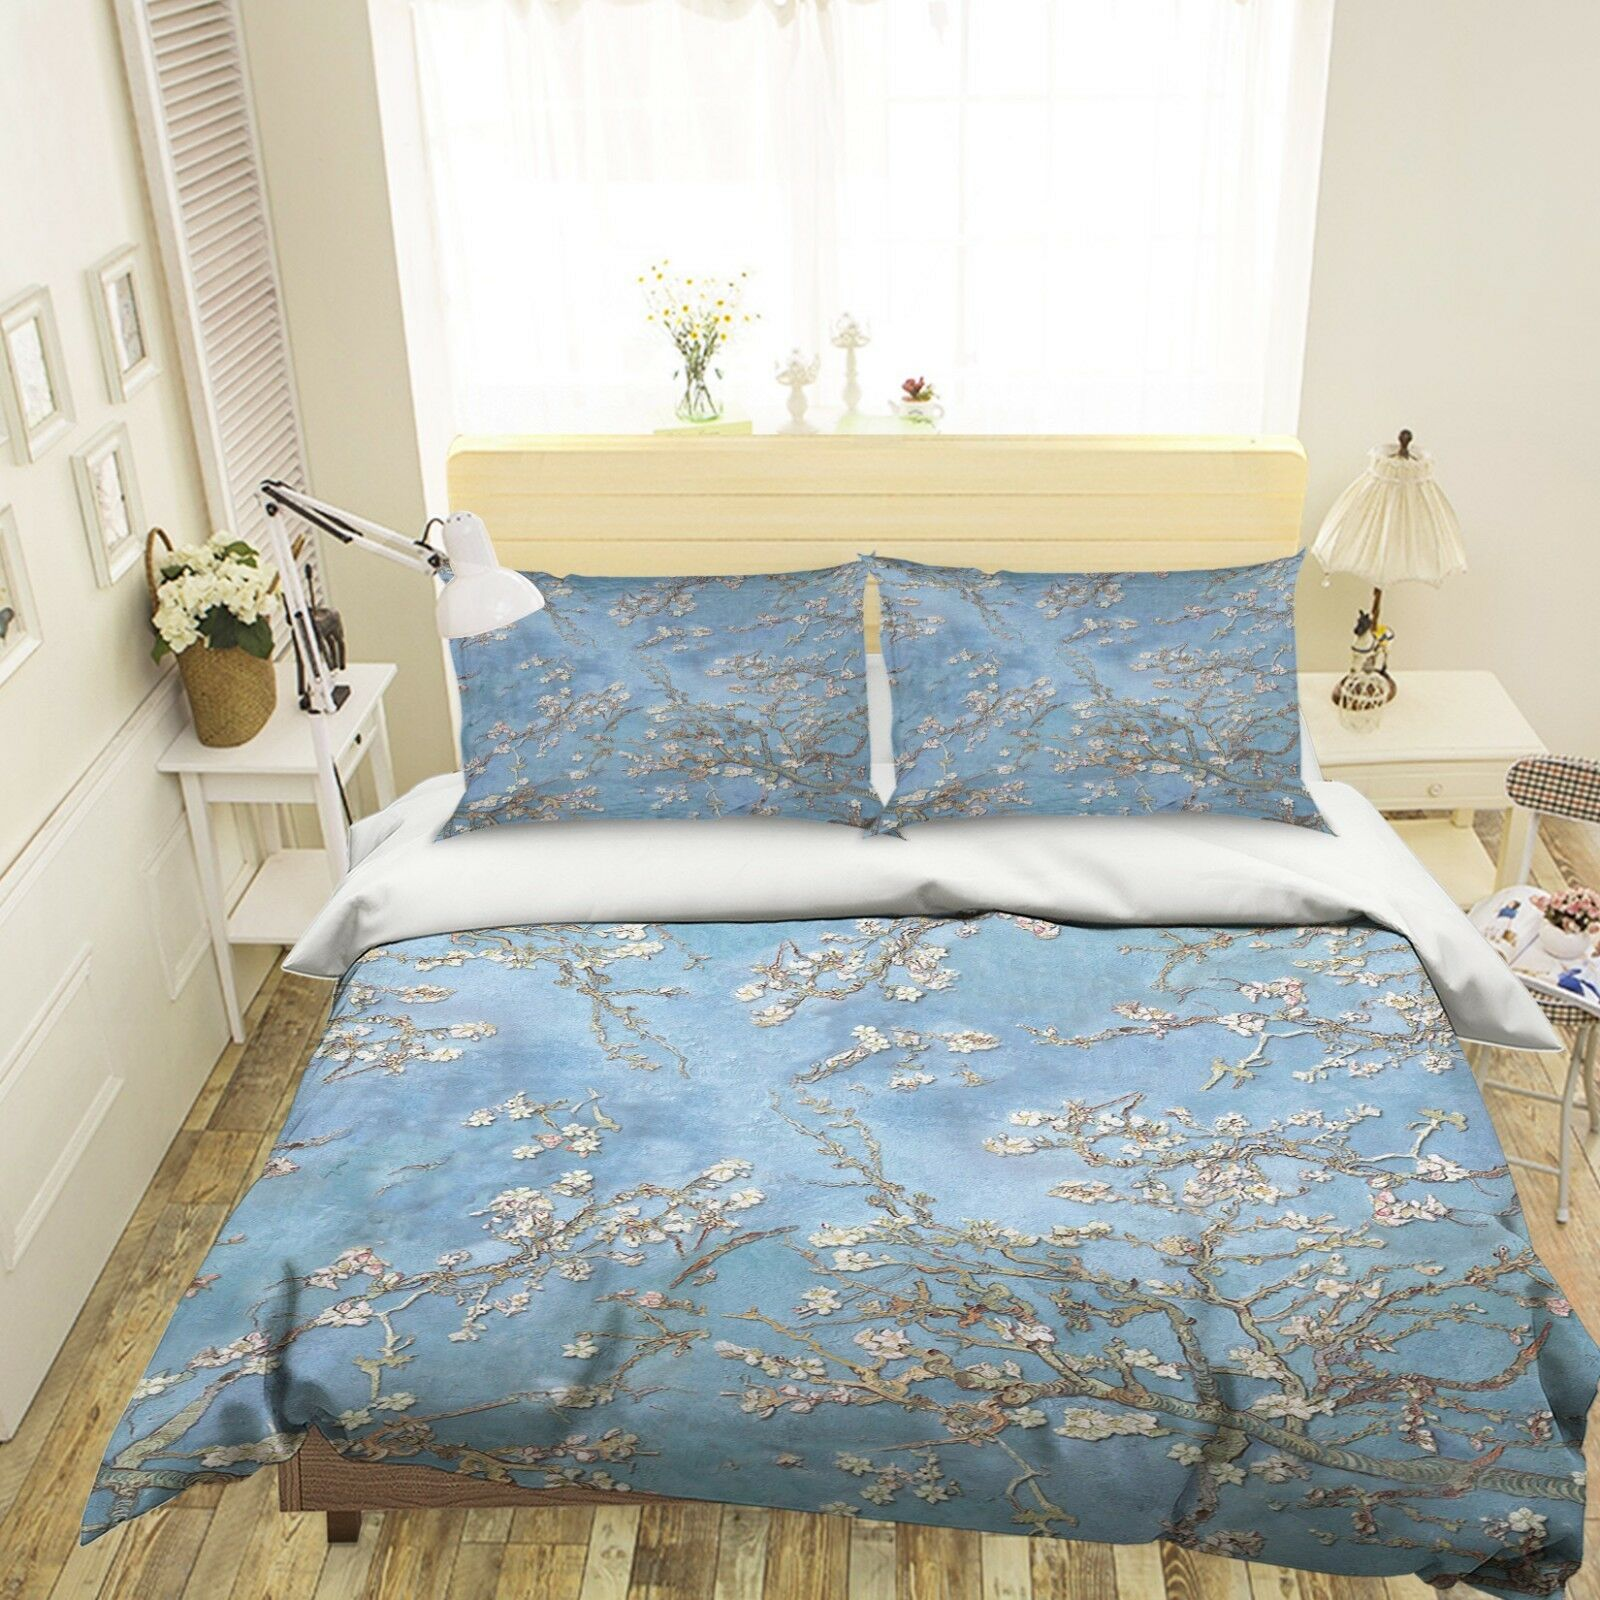 3D Blaumen Baum Himmel 6 Bett Kissenbezüge steppen Duvet Decken Set Single DE